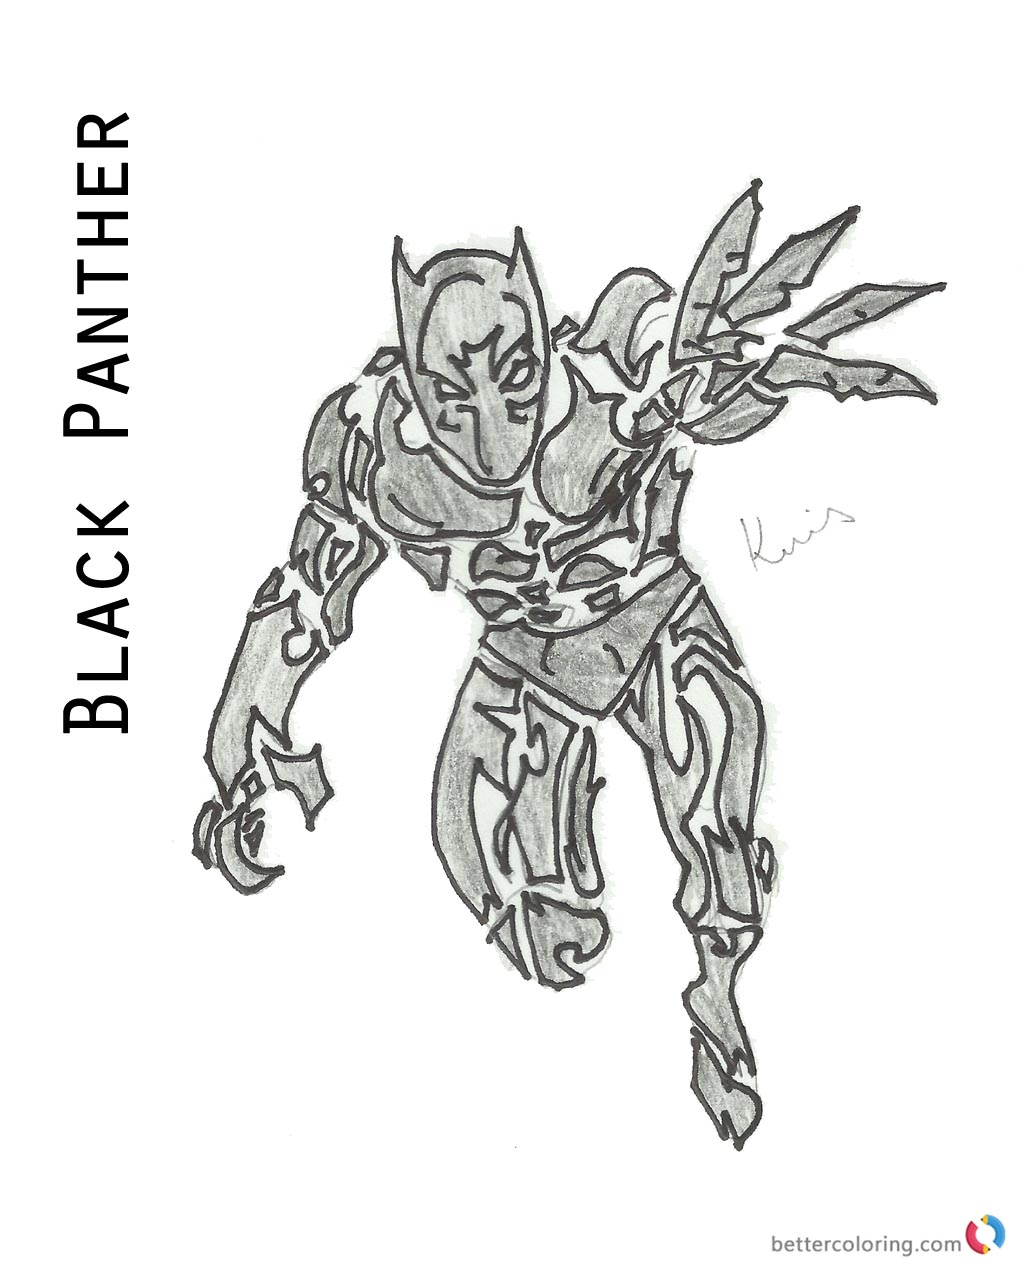 Lego Marvel Coloring Pages To Download And Print For Free: Marvel Black Panther Coloring Book